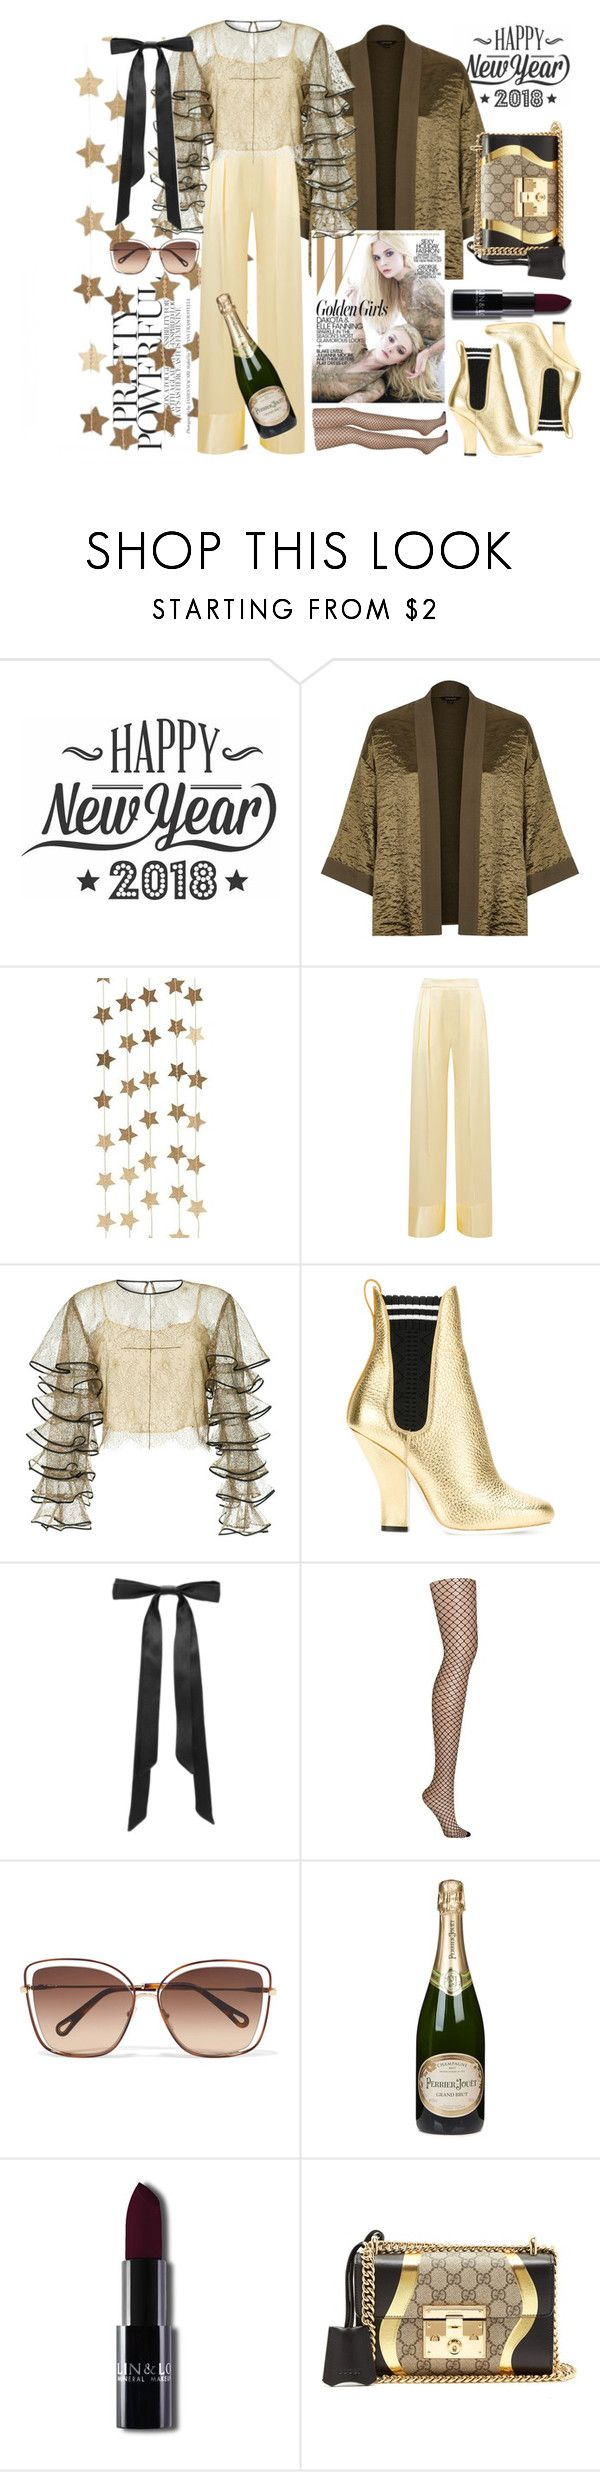 """""""Cause célèbre #PolyPresents: Trending #New Year's Bash #New Year's Day"""" by cigoehring ❤ liked on Polyvore featuring Cricut, River Island, Berylune, Michael Lo Sordo, HUISHAN ZHANG, Fendi, L. Erickson, DKNY, Chloé and Perrier-JouÃ«t"""